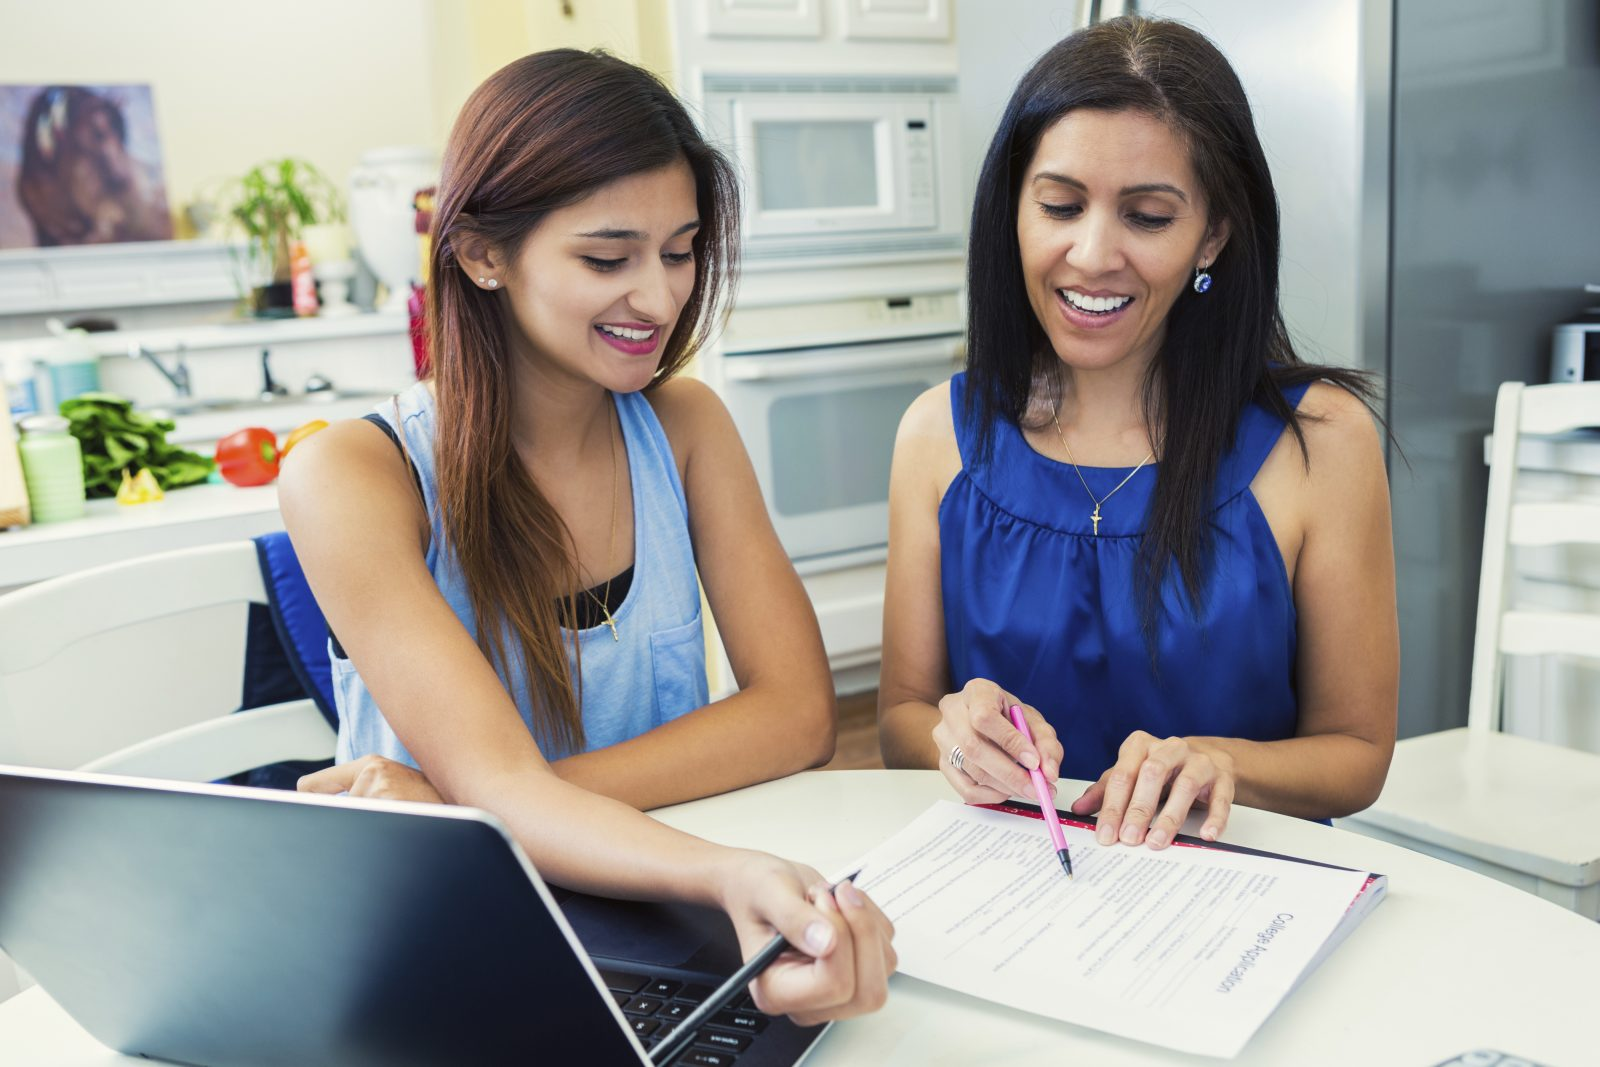 Mother helping daughter fill out College Applications in the Kitchen